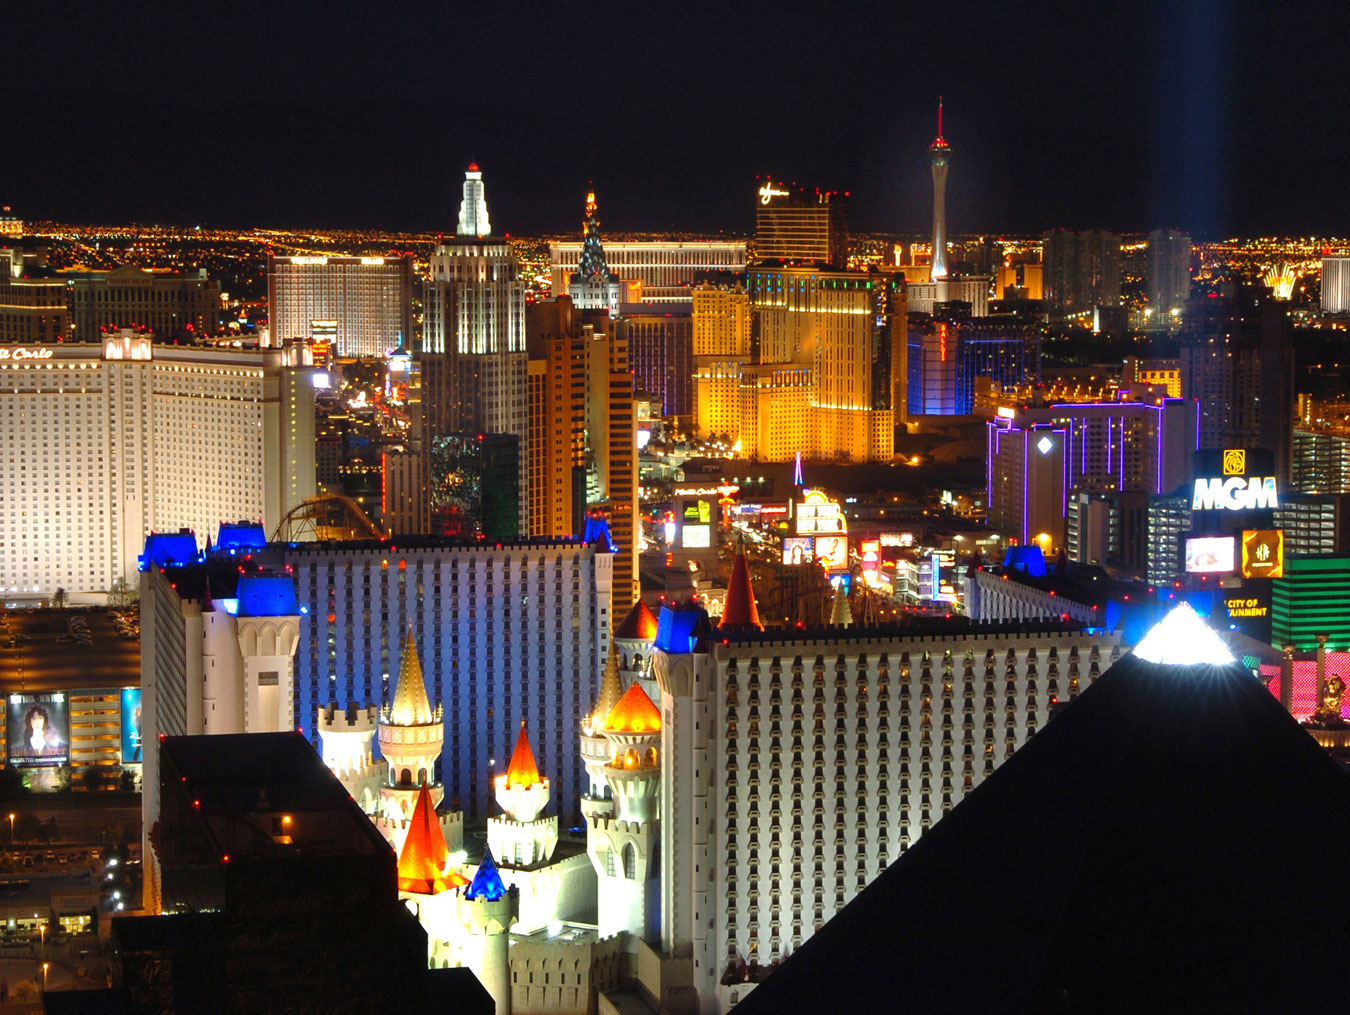 l3 1 latour las vegas strip view from mandalay bay 2 2005 california tours. Black Bedroom Furniture Sets. Home Design Ideas